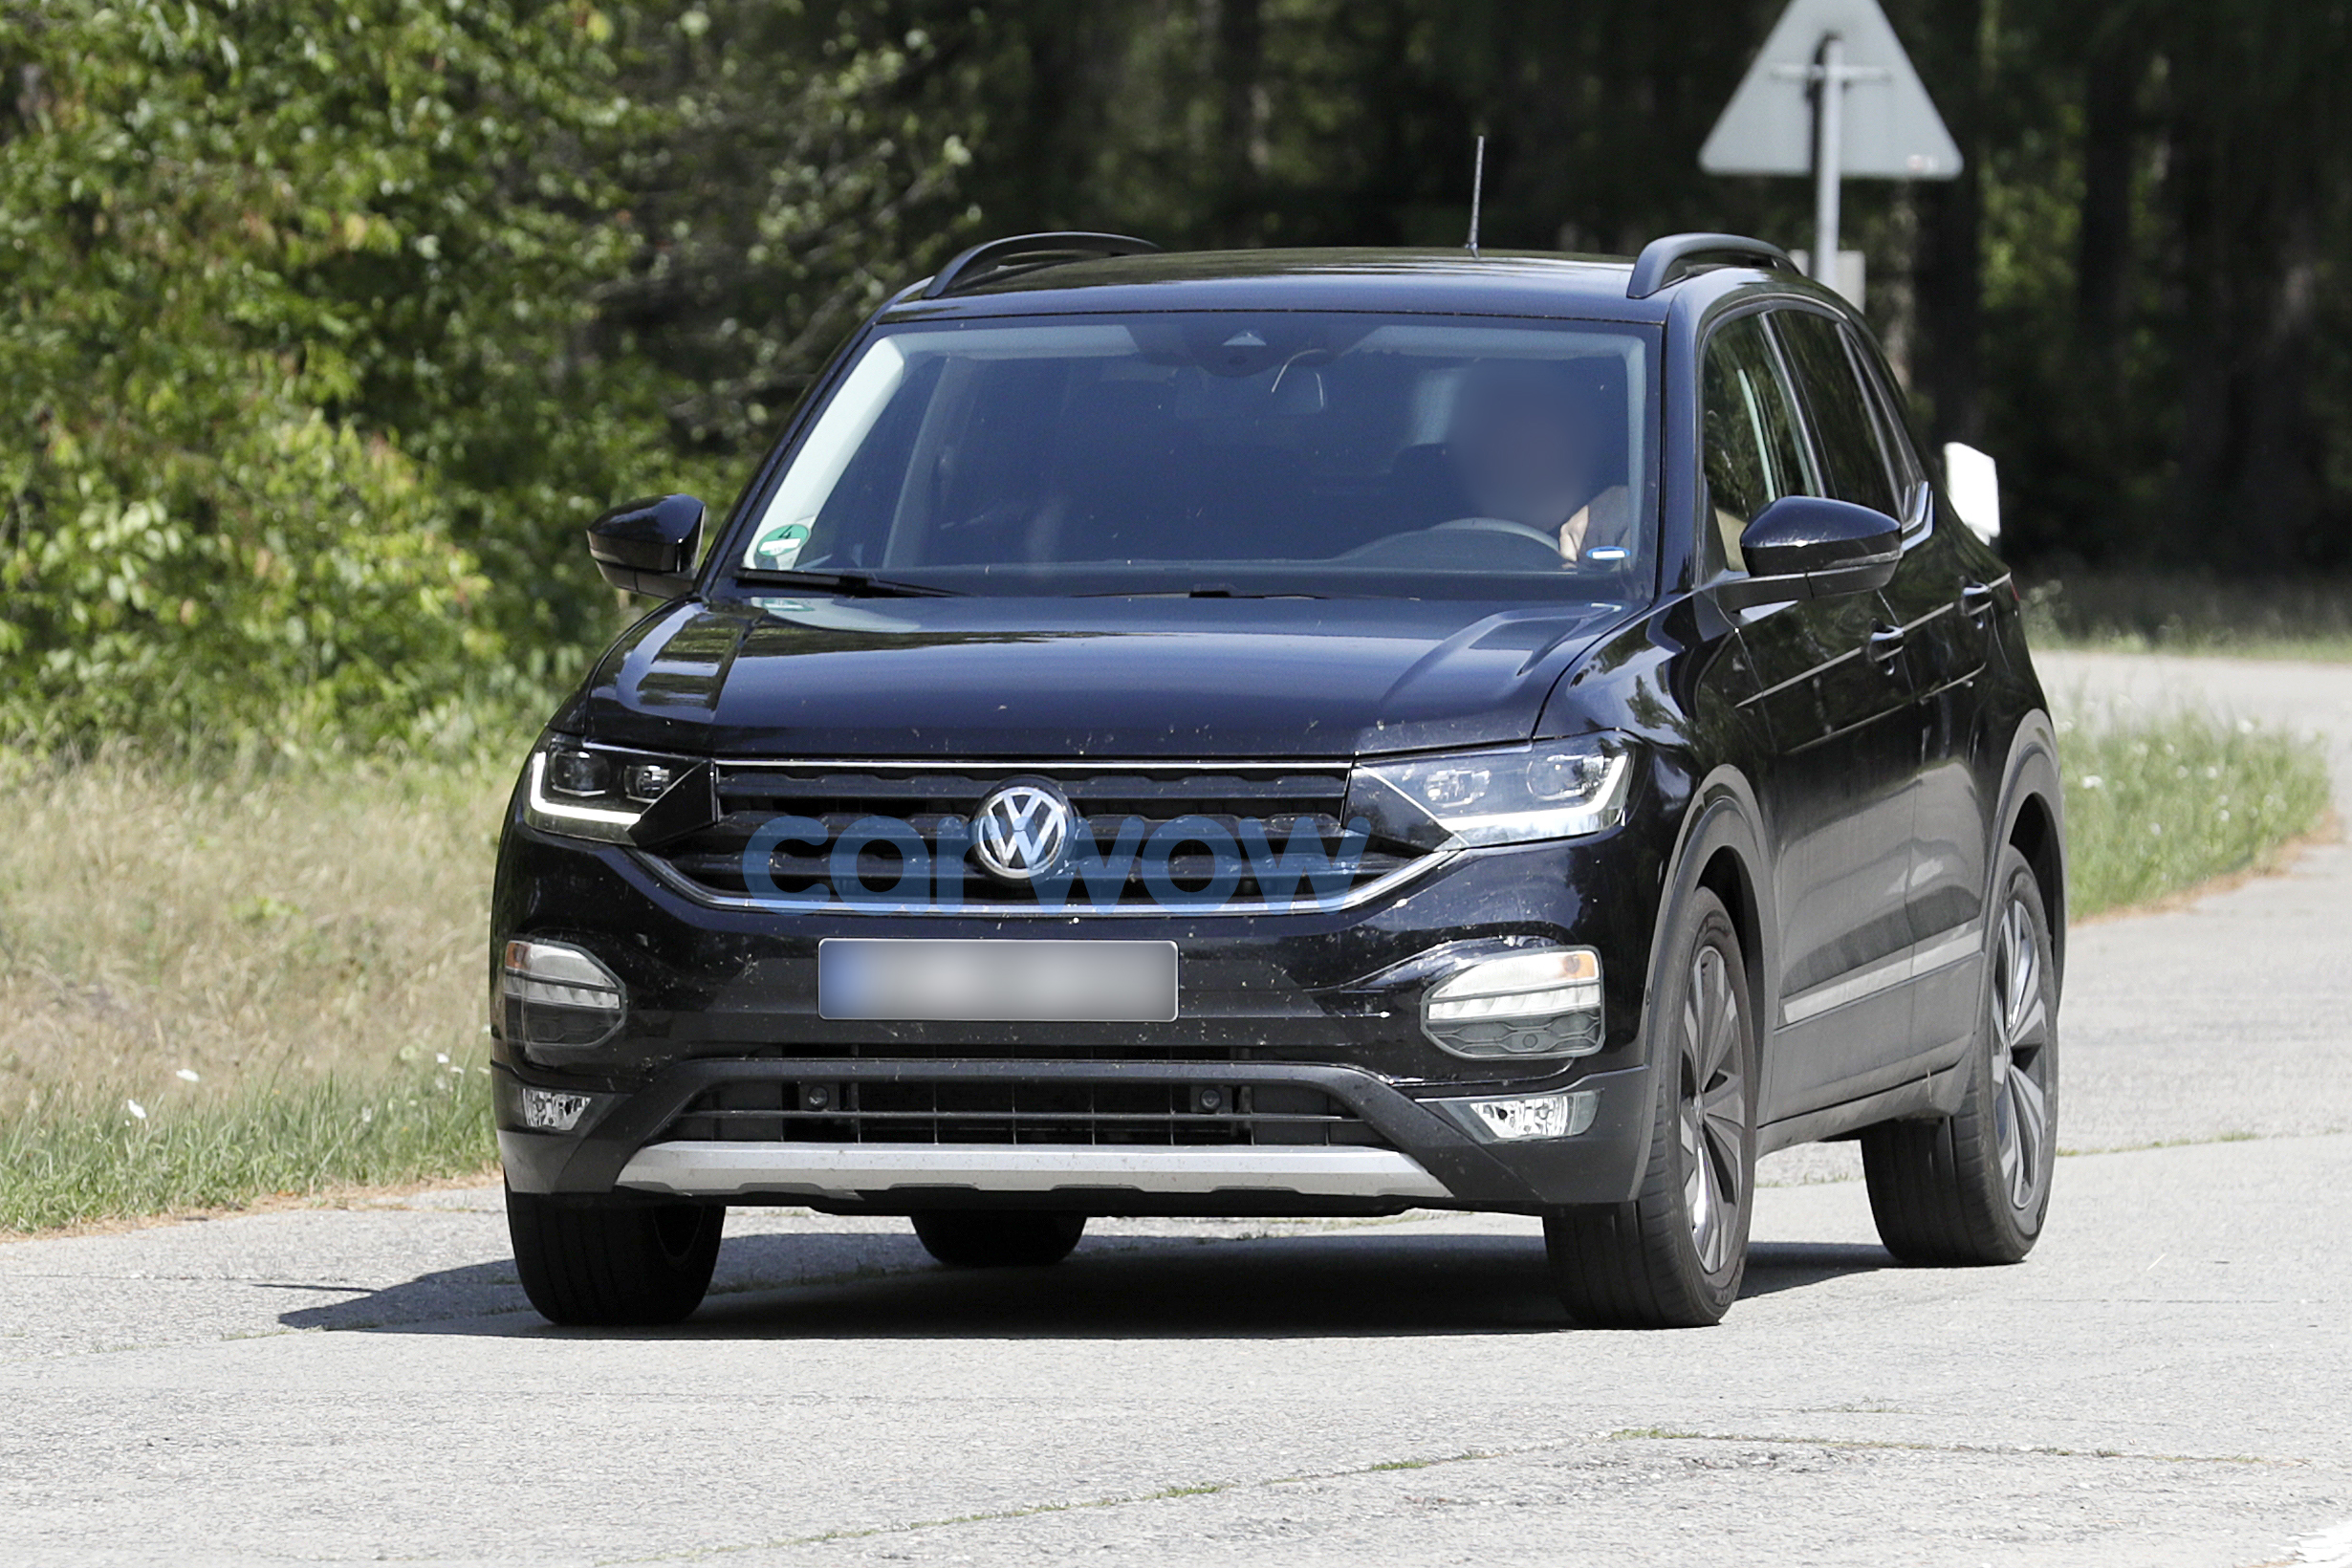 2019 VW T-Cross SUV price, specs and release date | carwow